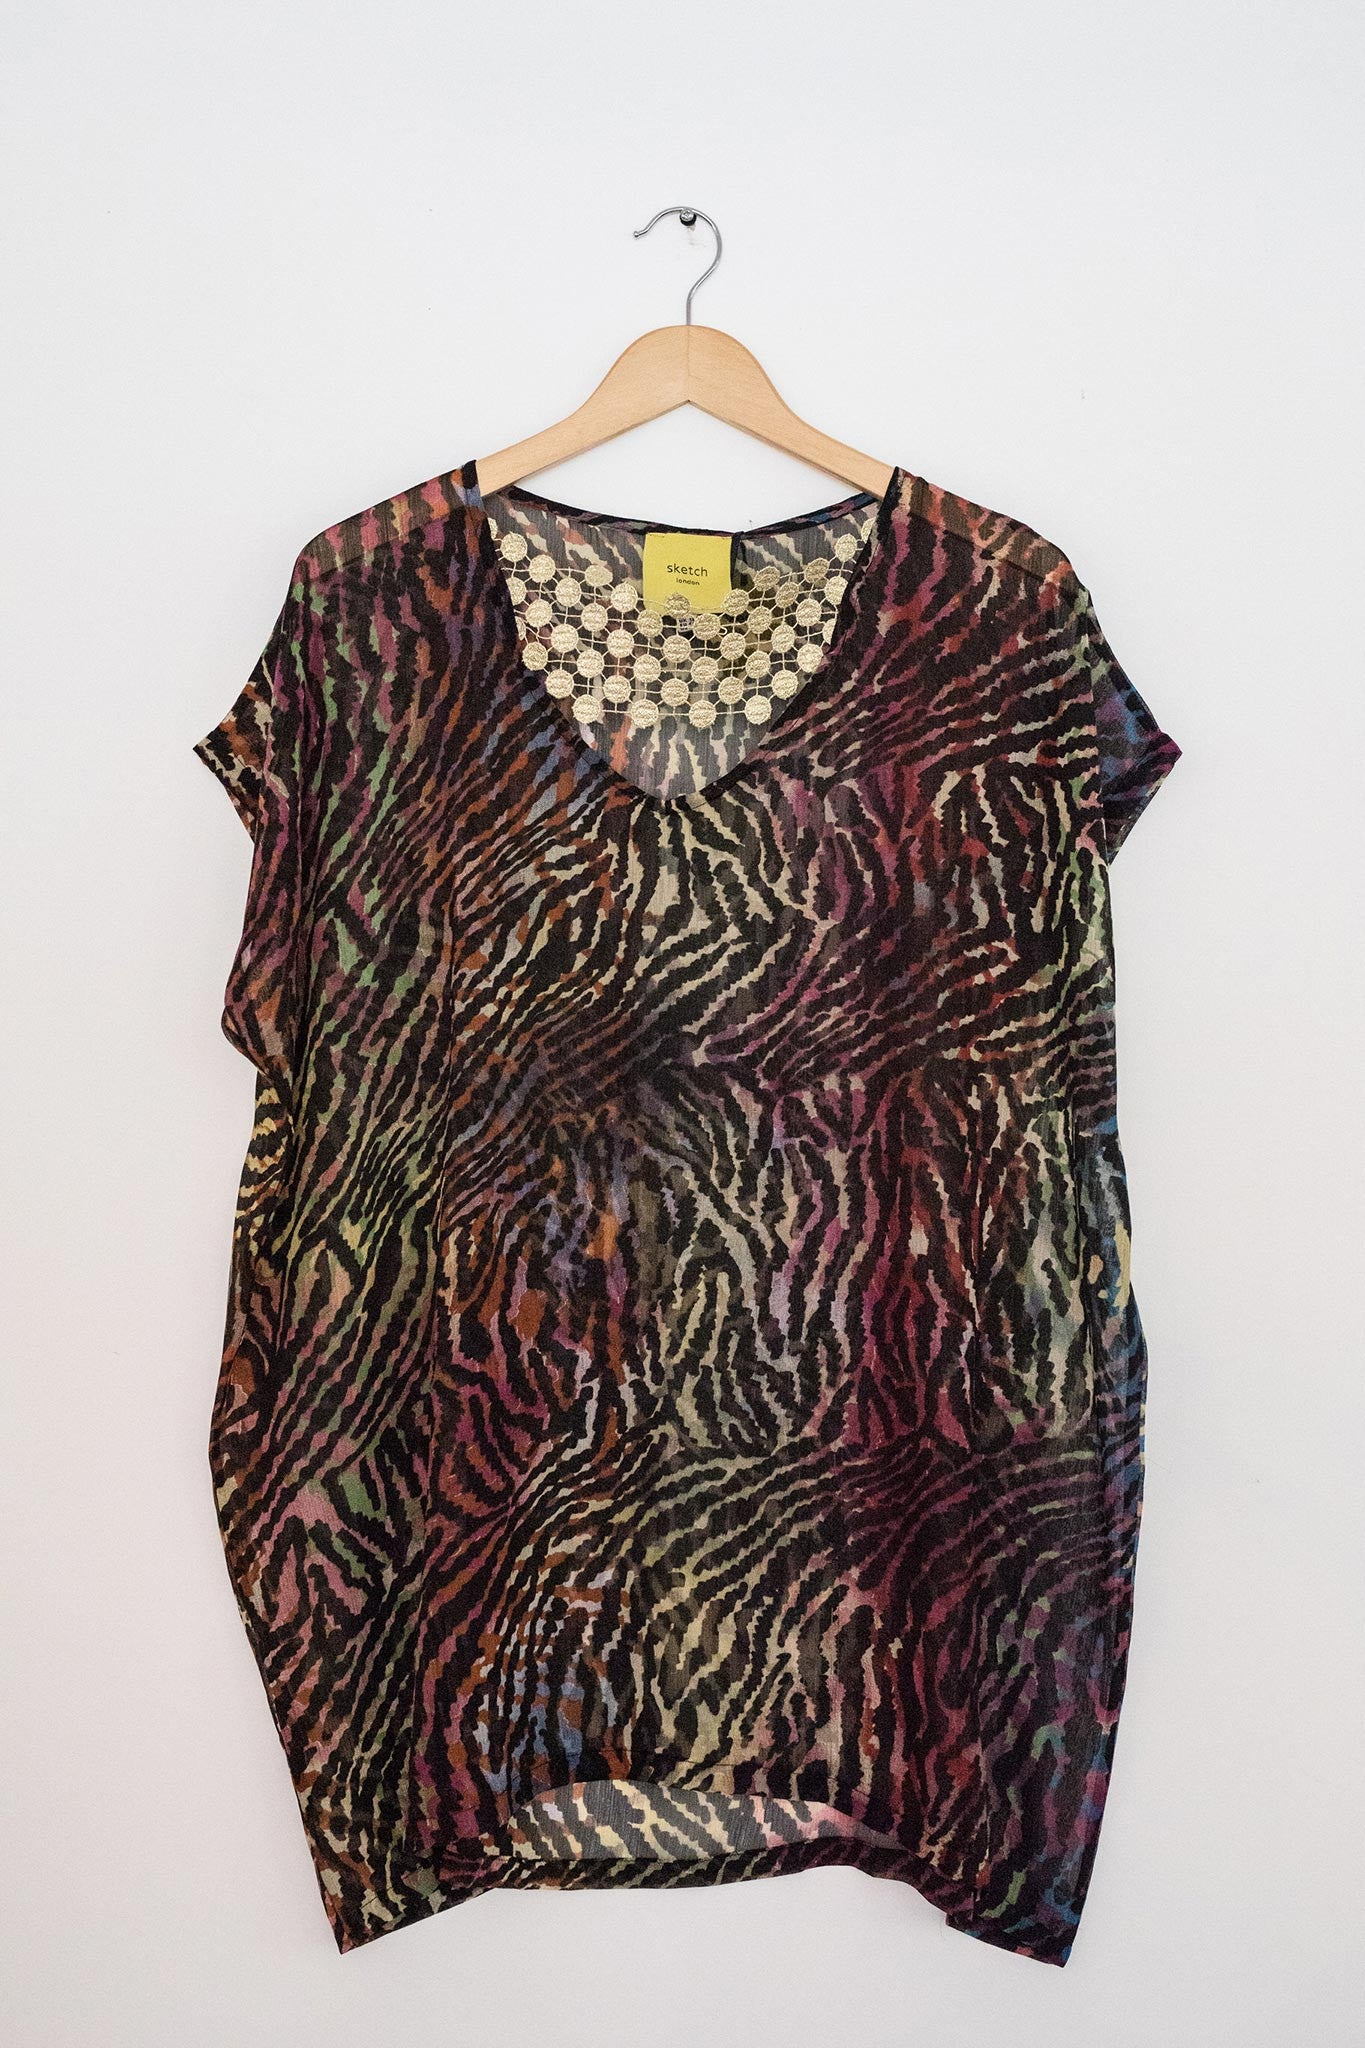 Sketch London Fashion caftan kaftan beachwear cover up animal print zebra colourful british ethical sustainable